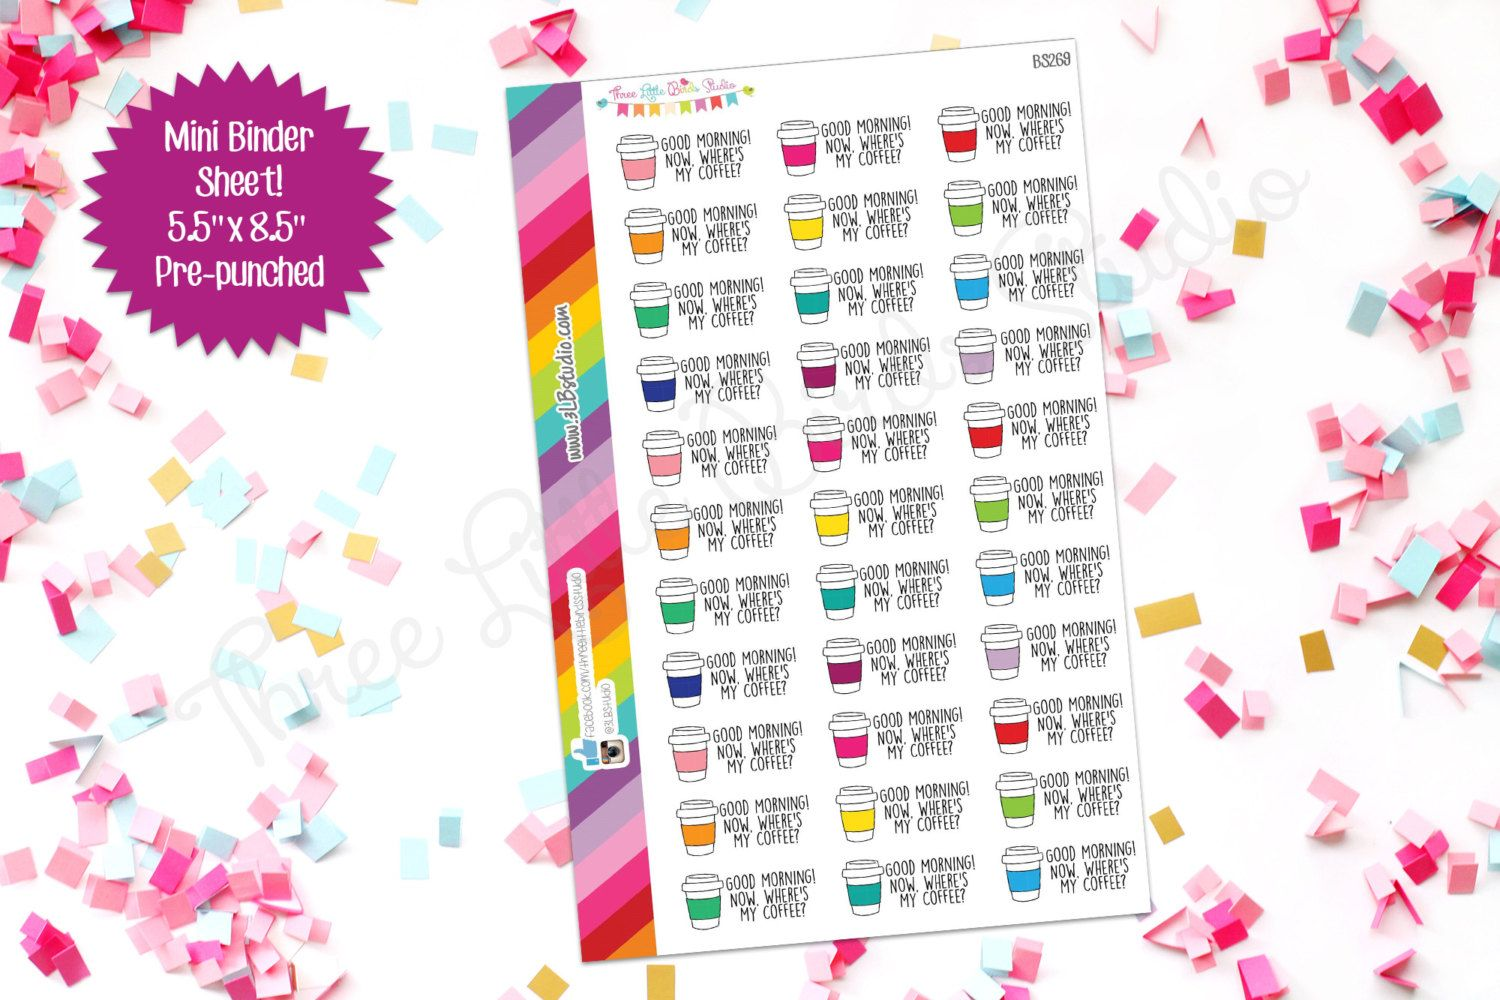 Where's My Coffee Planner Stickers! (BS269) For your Erin Condren, Happy Planner, or other planner by 3LBstudio on Etsy